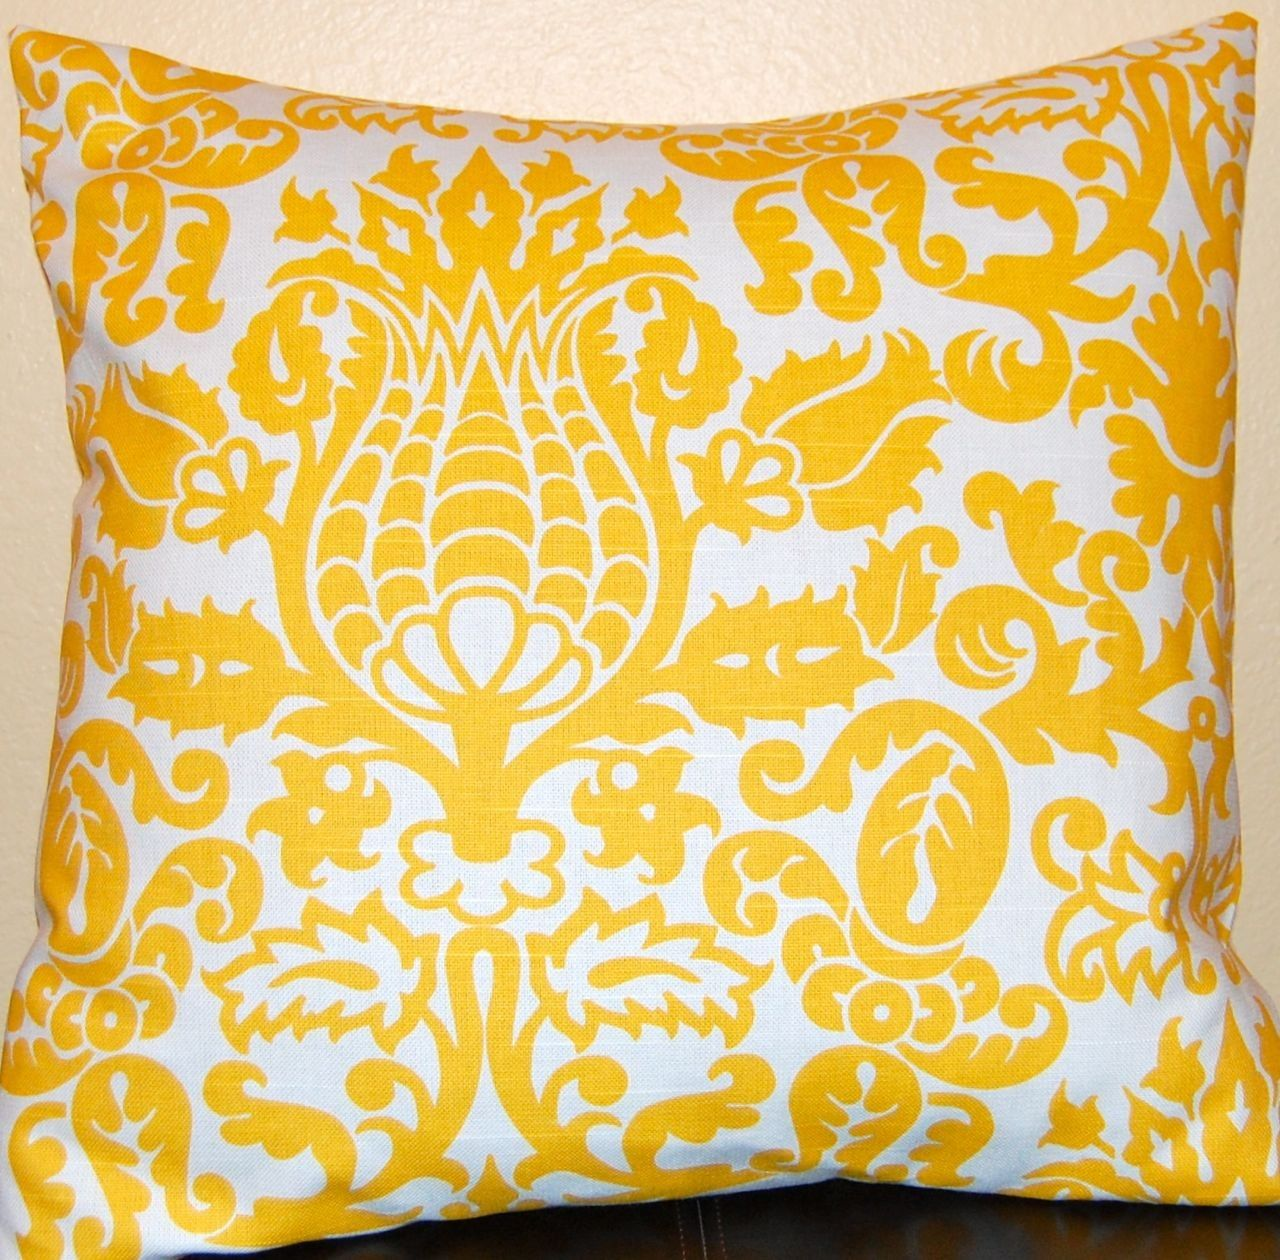 Cojines Decorativos Azules Yellow Pillow Covers Accent Pillows 18 X 18 Inches